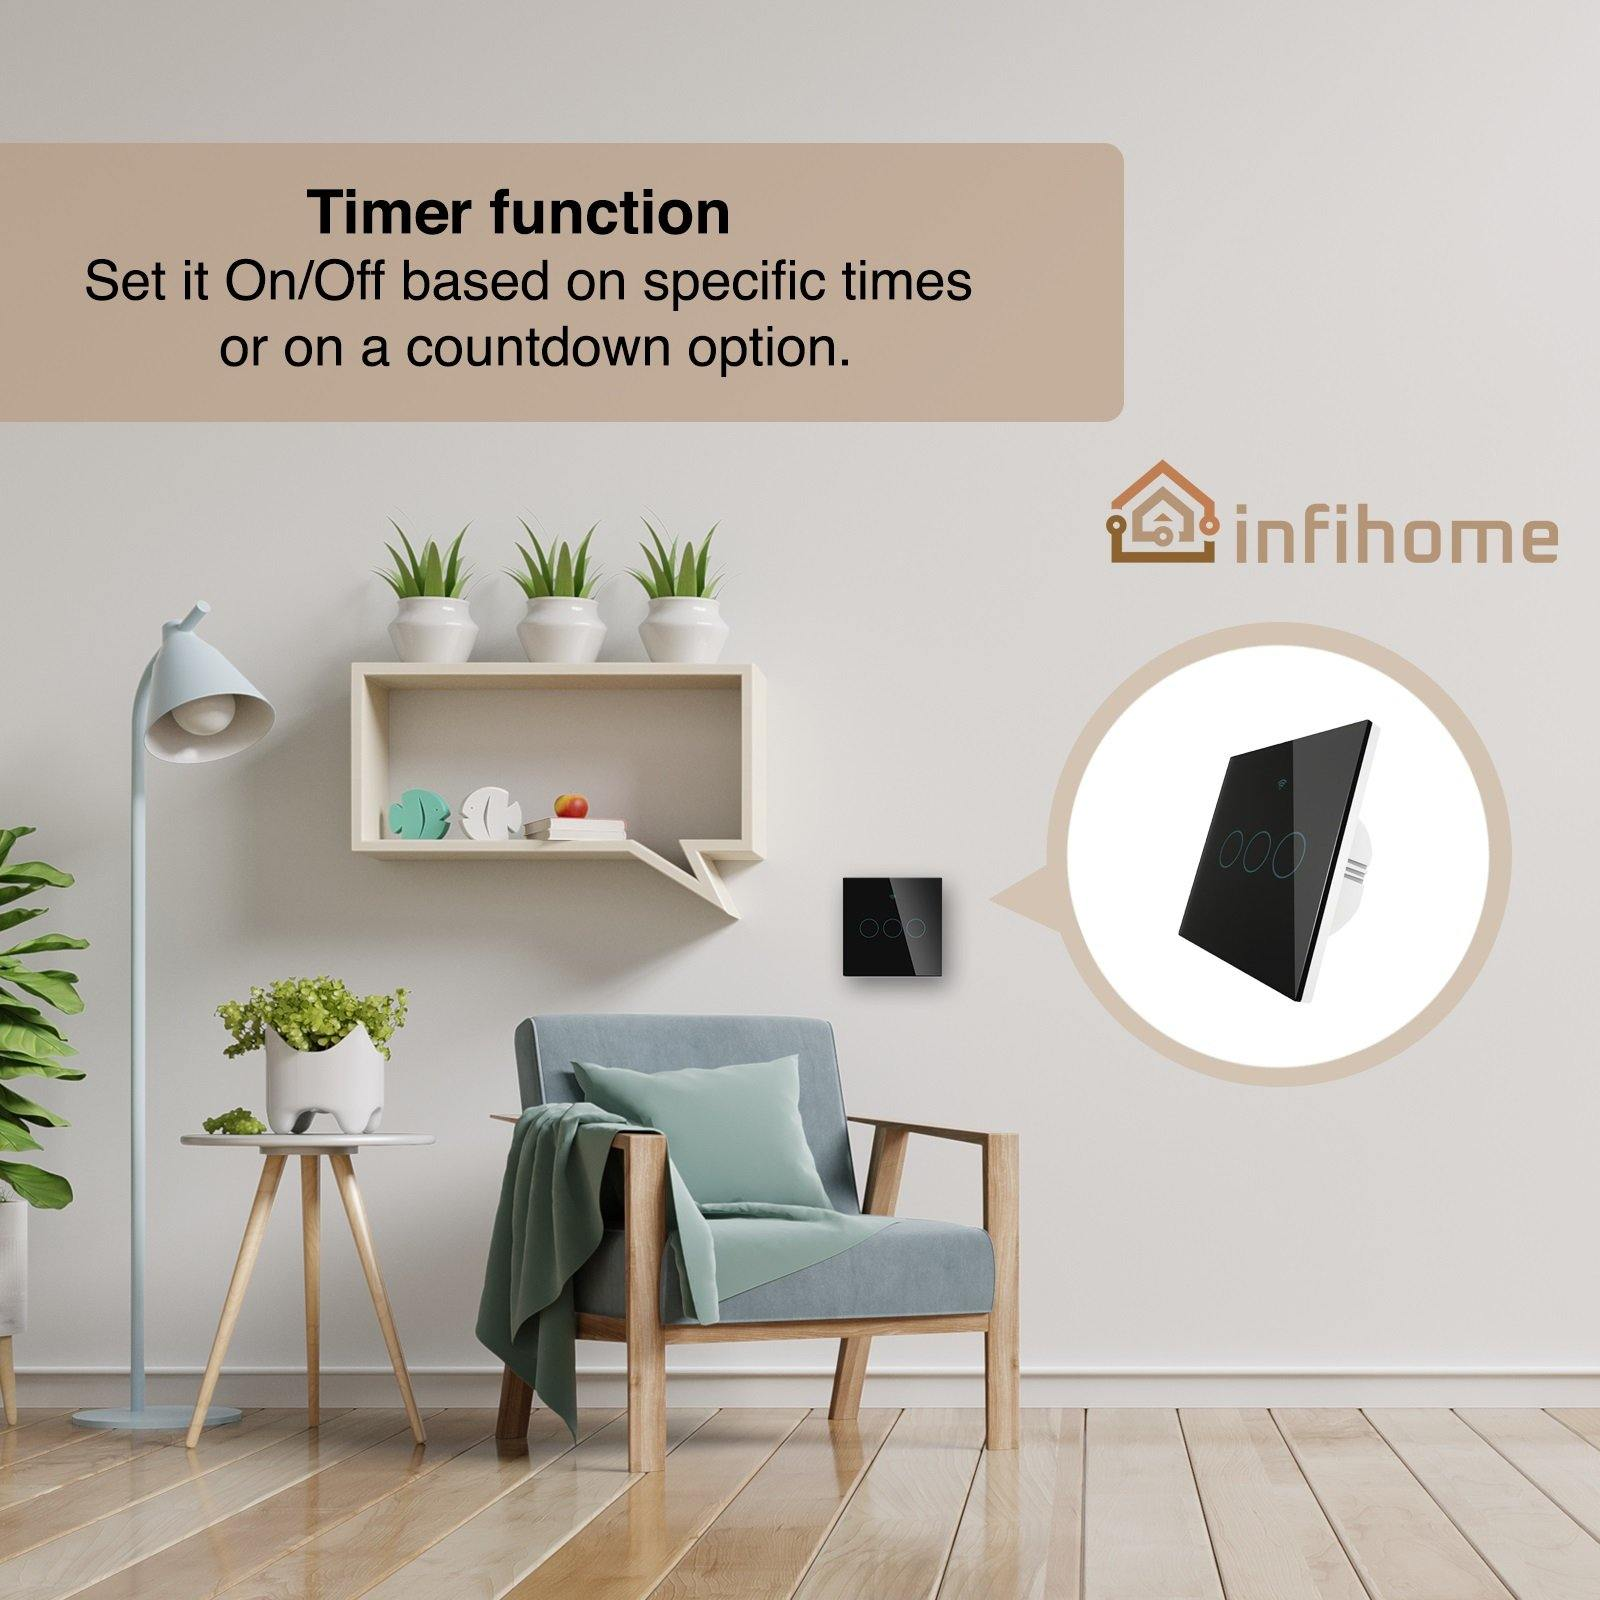 WiFi Smart Touch Light Switch (EU Black, 1, 2, or 3 Way Control) - InfiHome